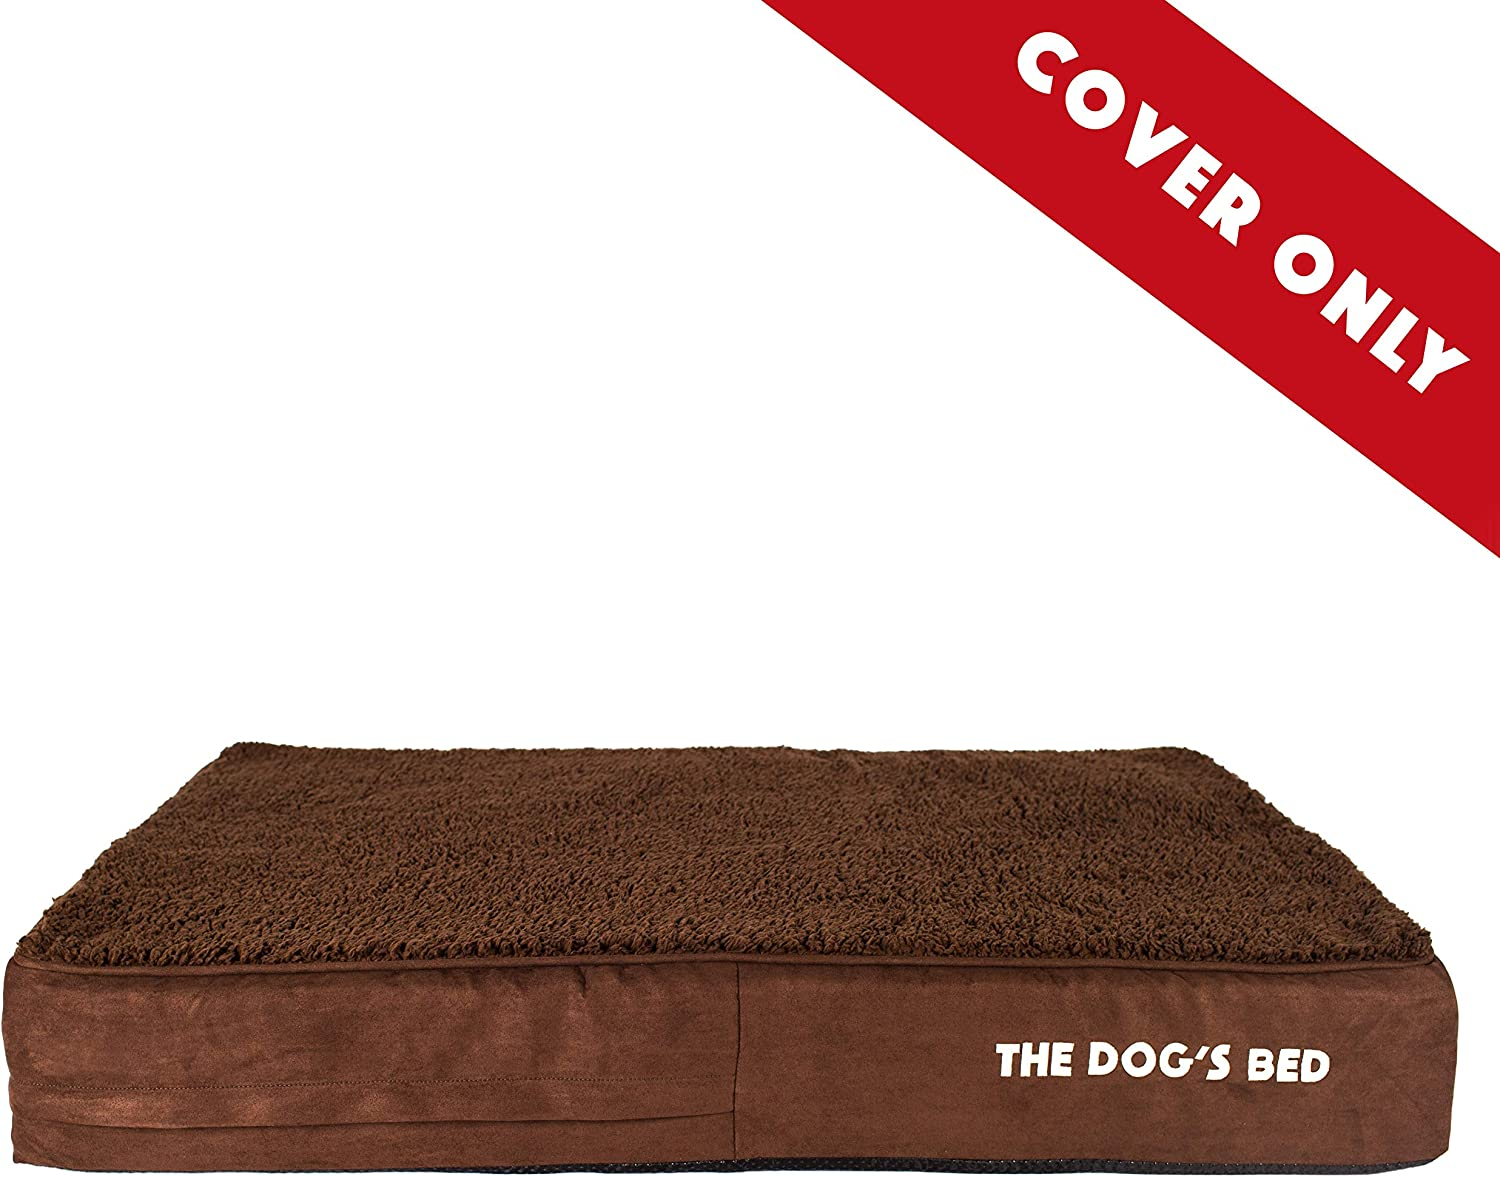 Replacement Outer Cover ONLY (Outer Cover ONLY  NO Bed, NO Waterproof Inner) for The Dog's Bed, Washable Quality Plush Fabric, Large 40  x 25  x 6  (Brown Plush)